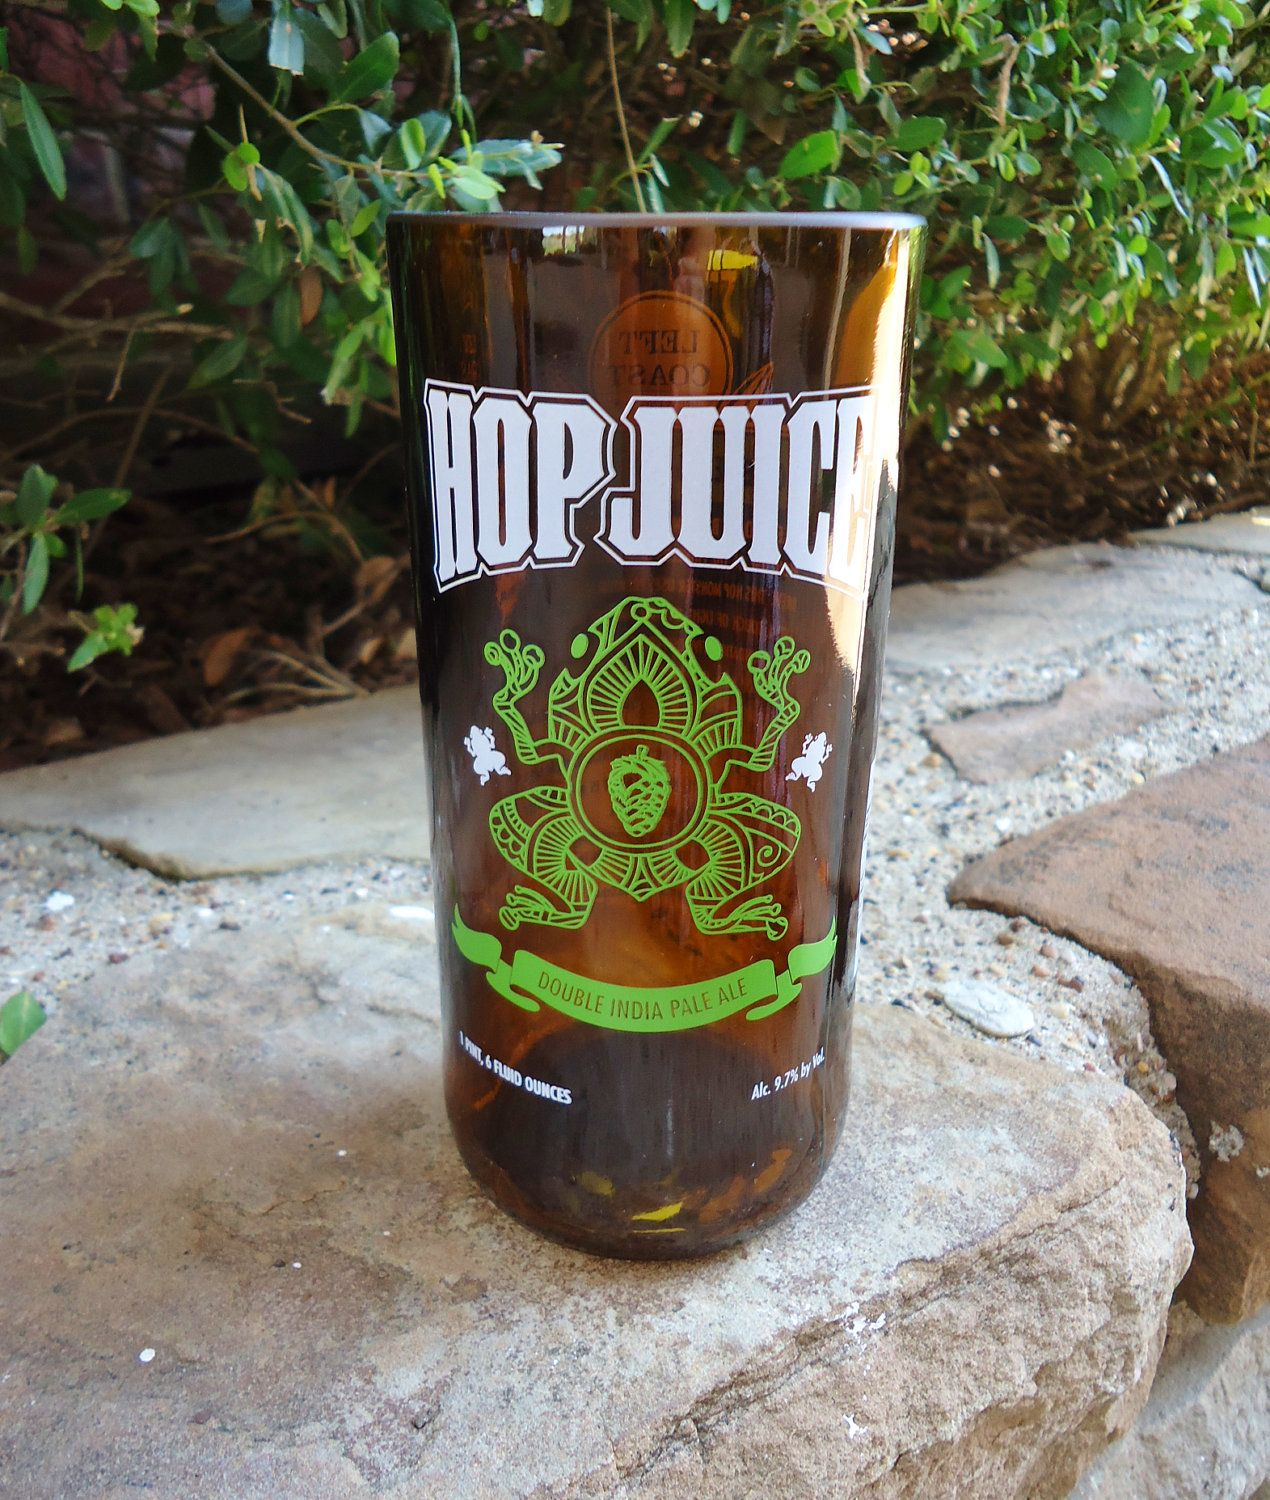 Recycled Beer Bottle Glass from a Left Coast Brewing Co Hop Juice Bottle 16 oz